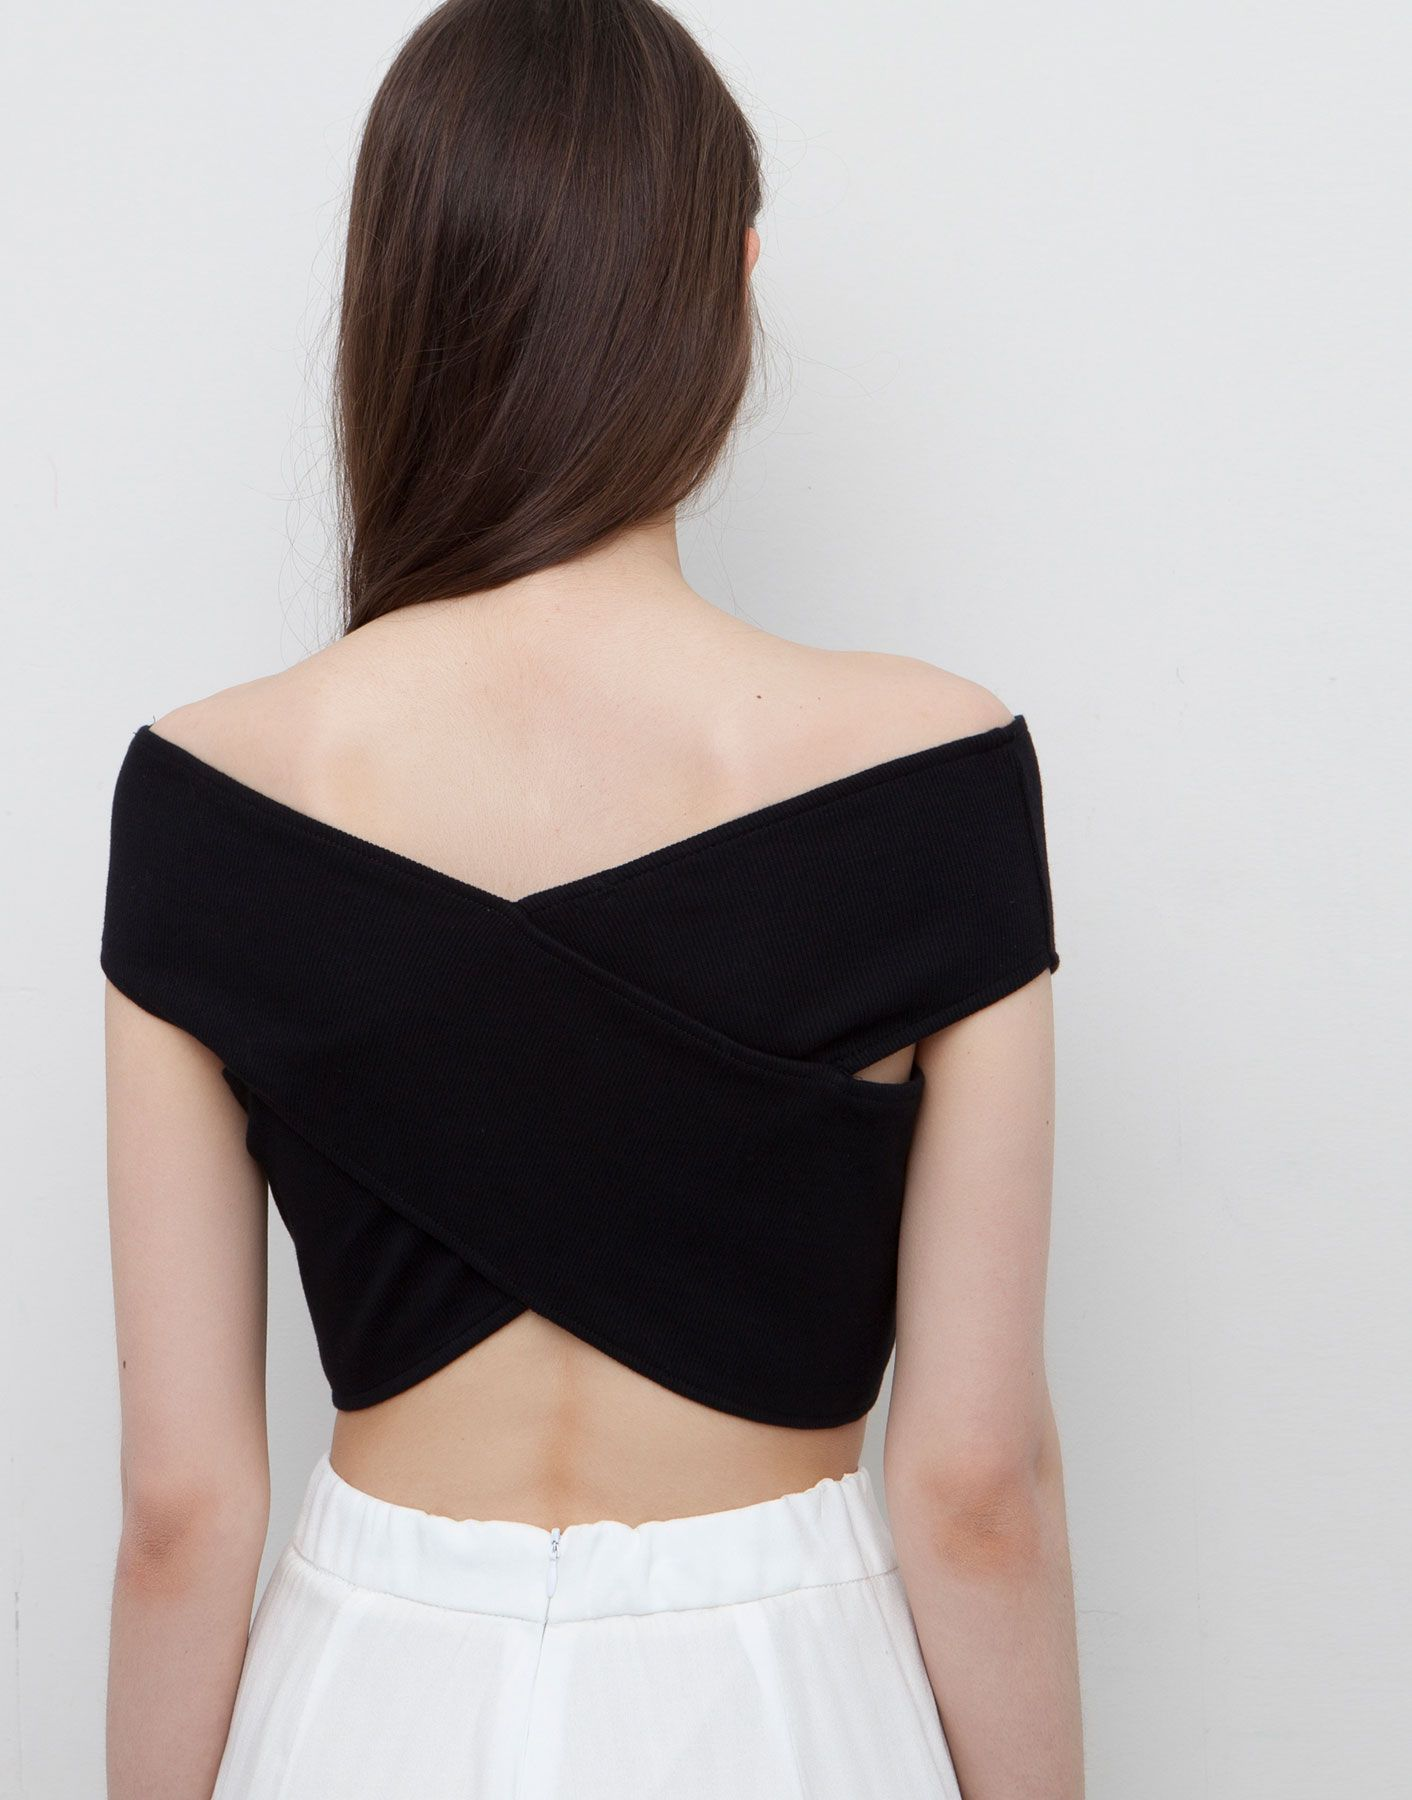 crossover black crop top t shirts and tops woman pull bear serbia pull bear pinterest. Black Bedroom Furniture Sets. Home Design Ideas